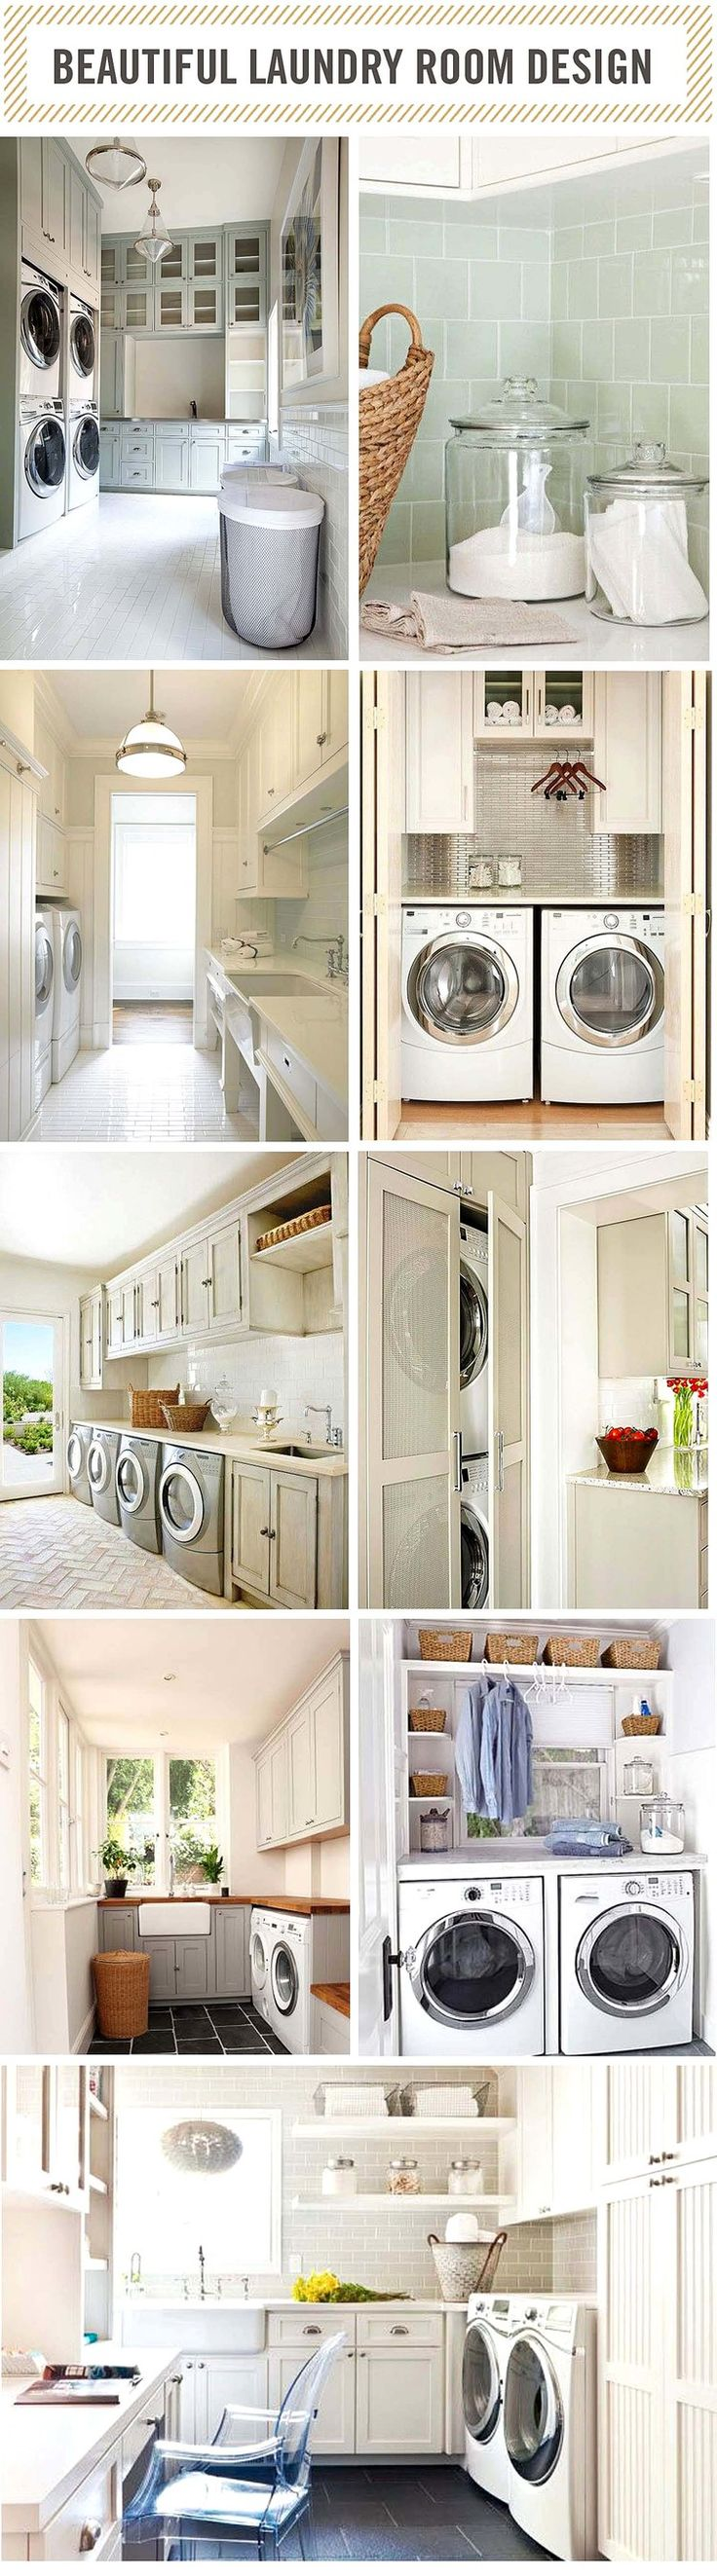 121 best Laundry Room images on Pinterest